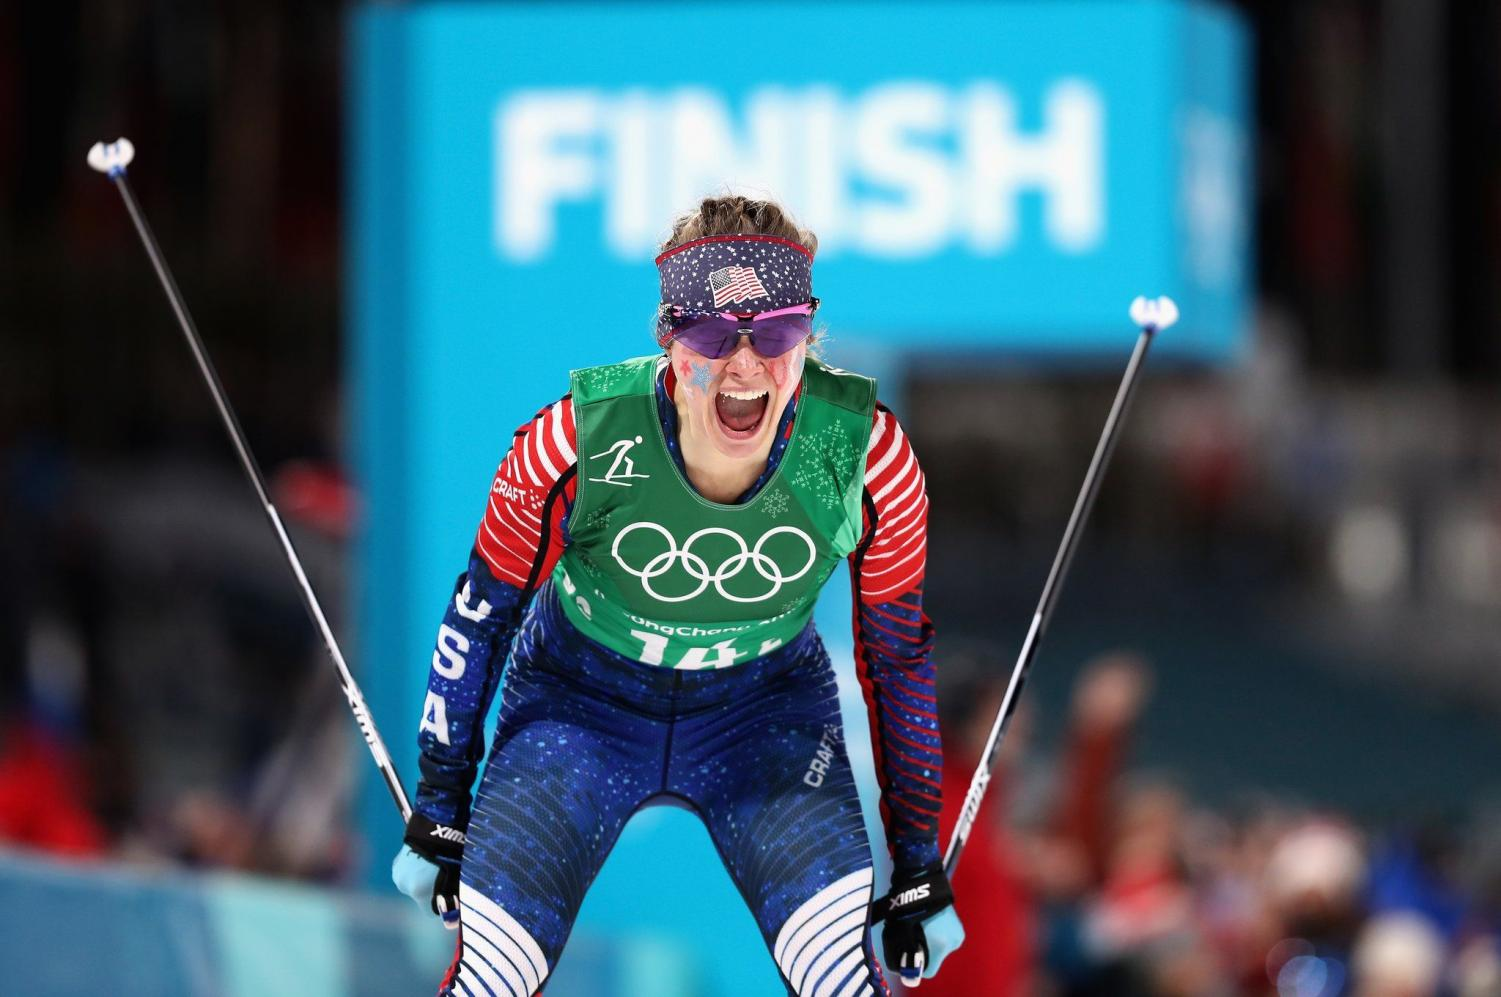 Cross-country skier Jessica Diggins makes history as she becomes the first American woman to win gold in a cross-country ski event.